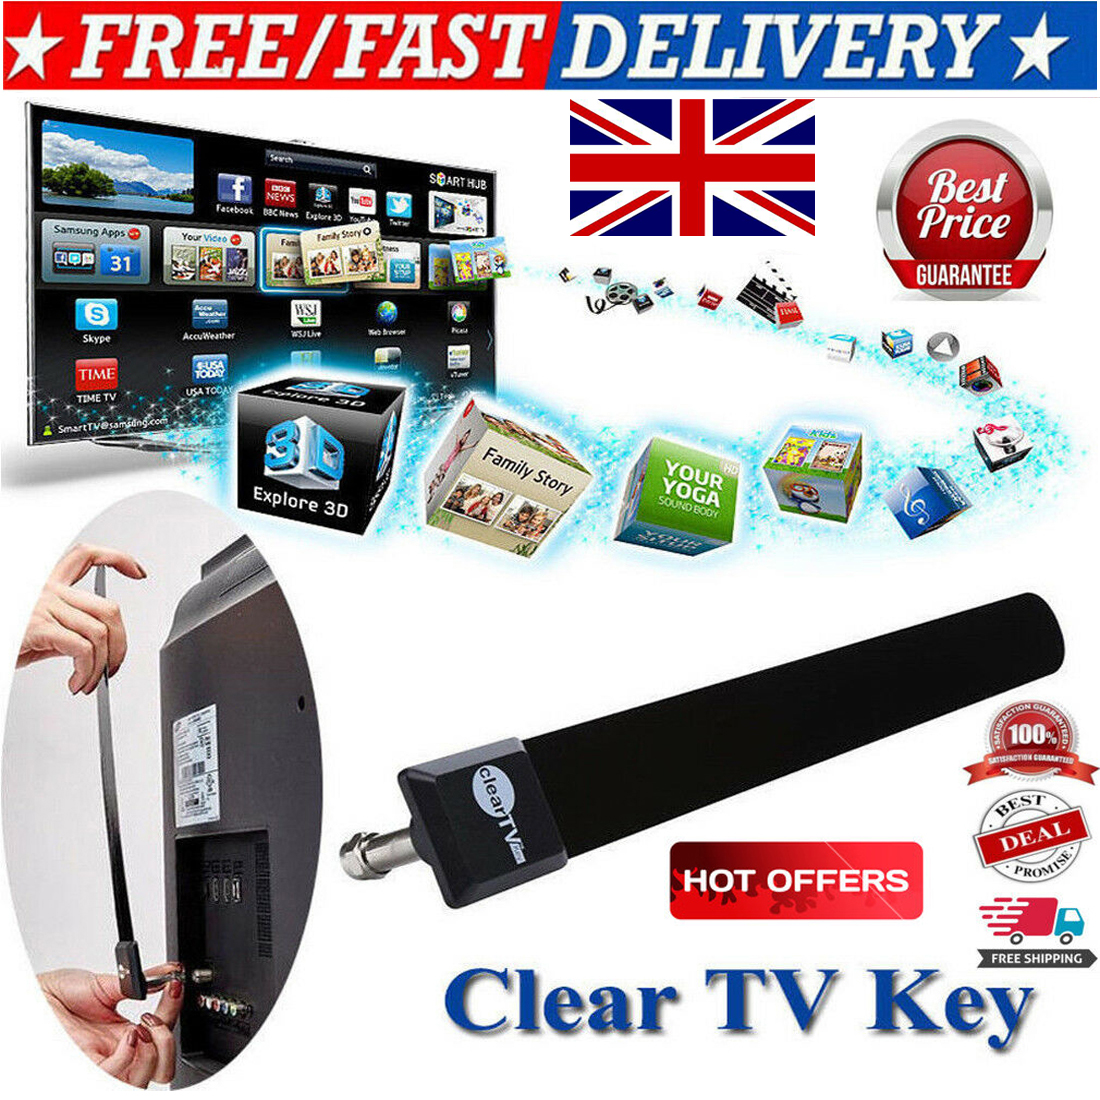 UK Clear TV Key HDTV FREE TV Digital Indoor Antenna Ditch Cable